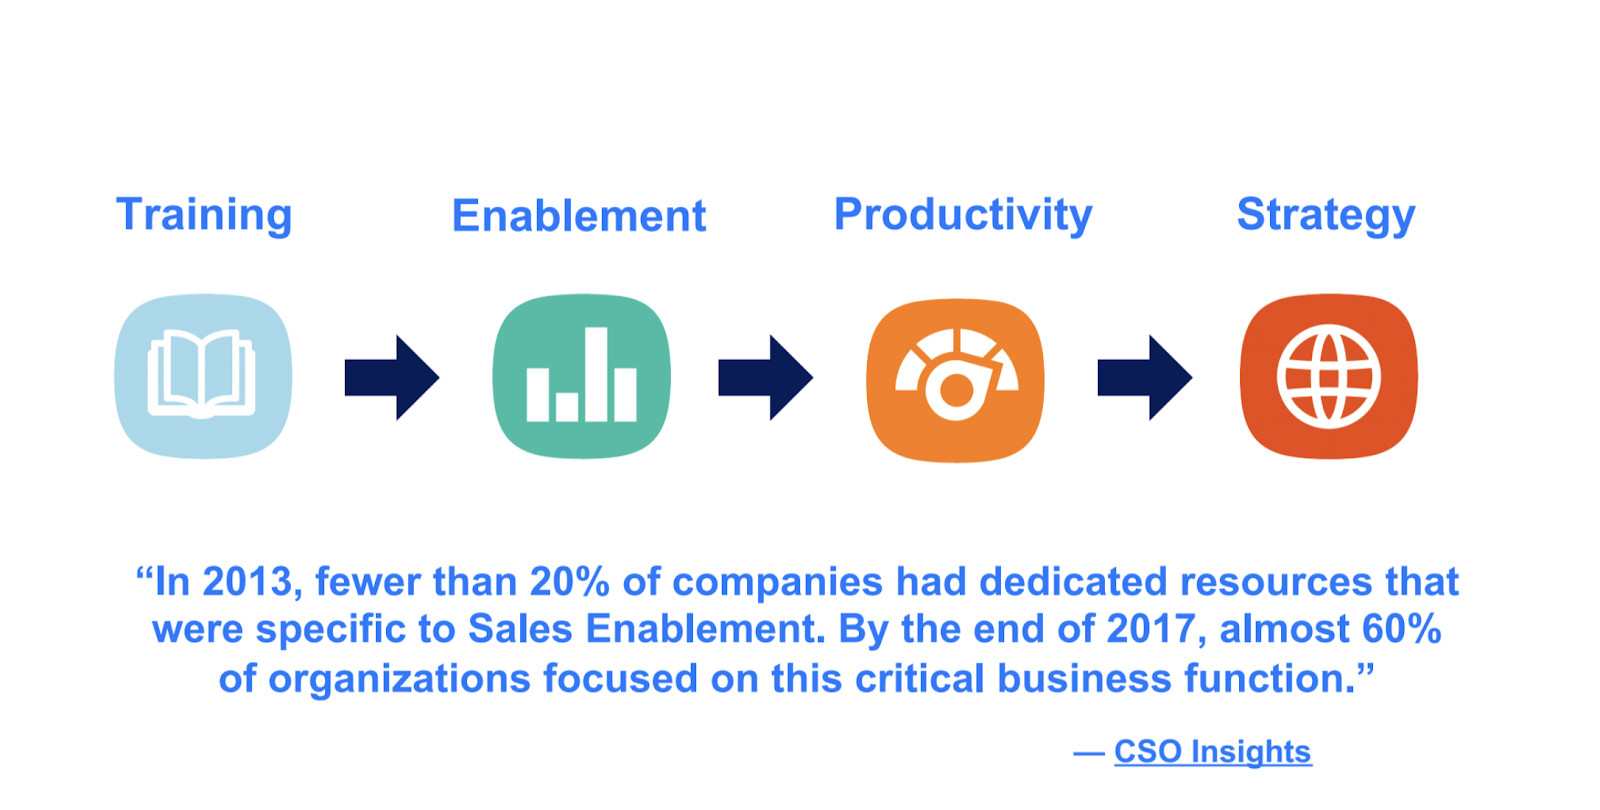 by 2017 almost 60% of organizations focused on sales enablement